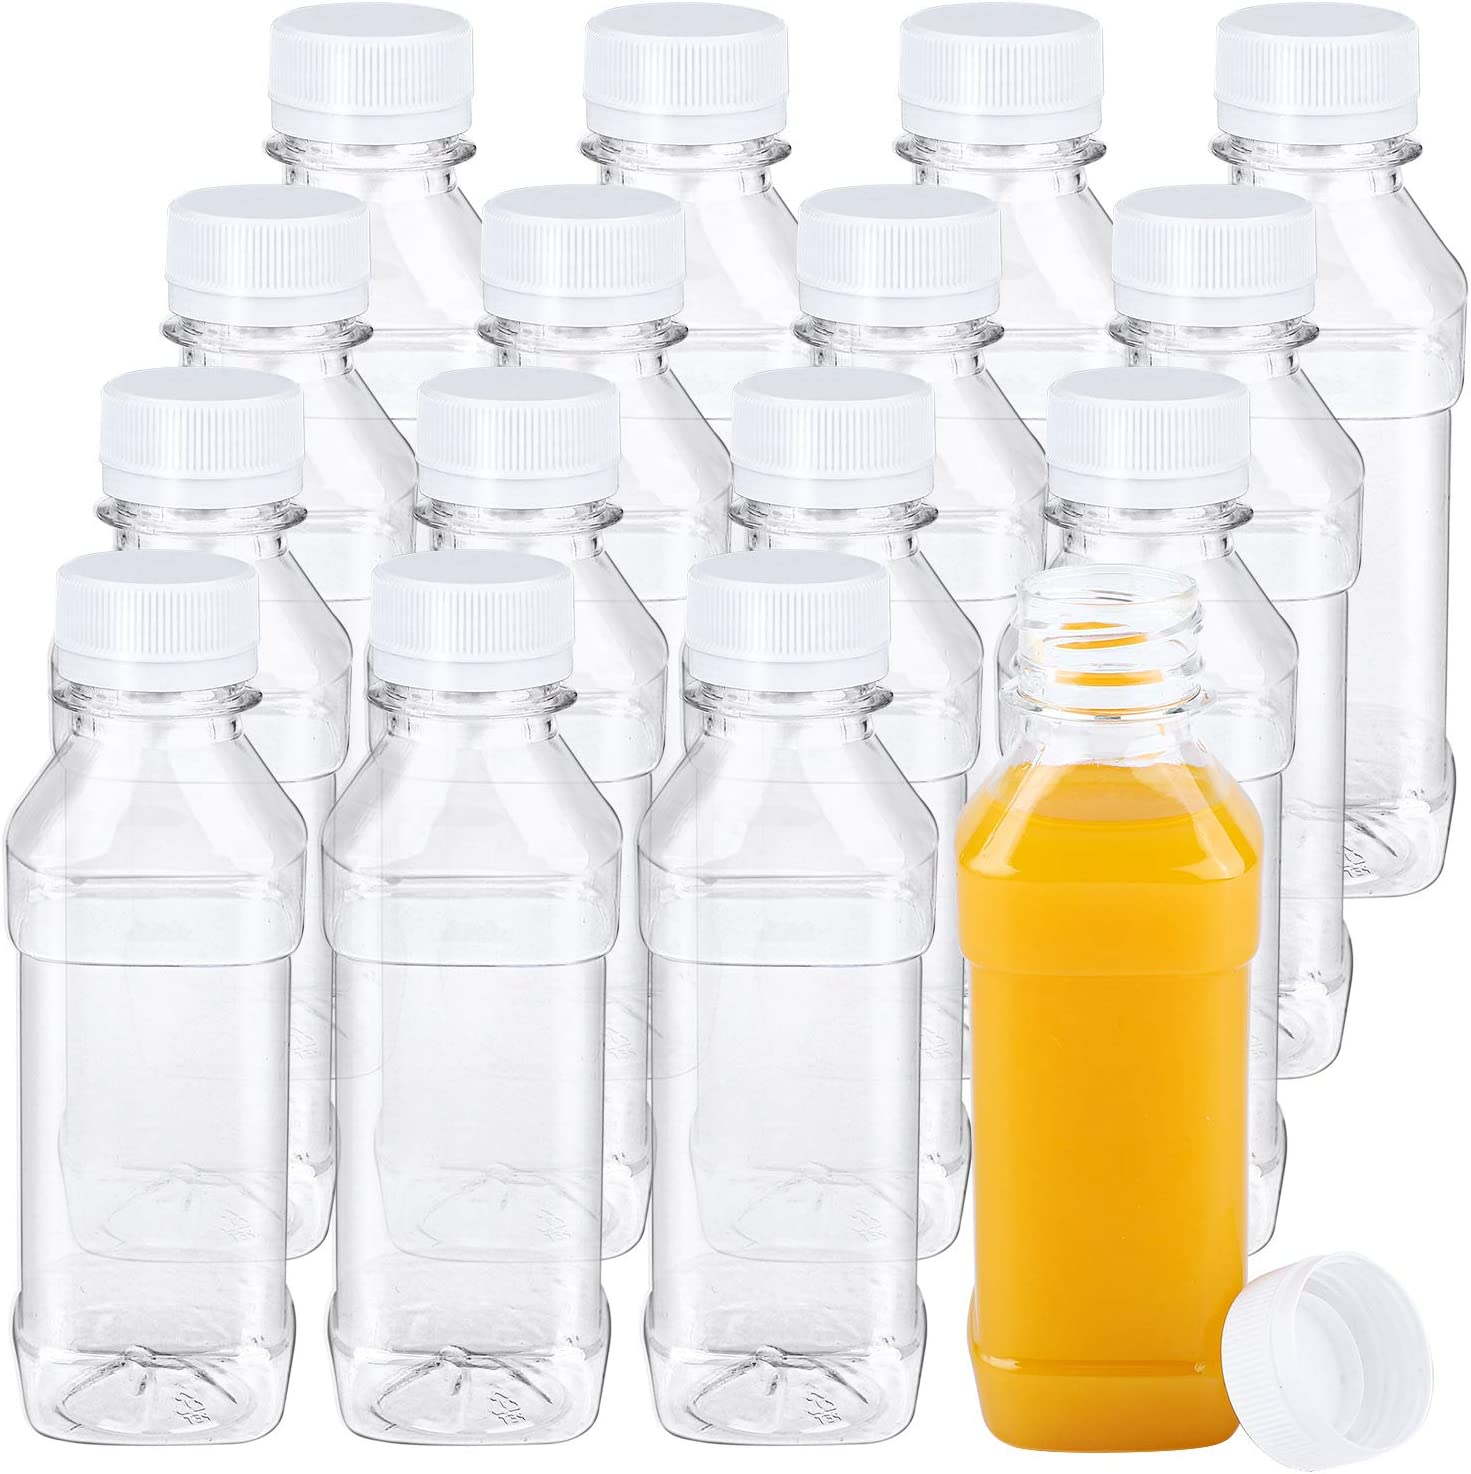 Aneco 16 Pack 4 Ounce Empty Plastic Juice Bottles with Lids Square Drink Containers for Storing Homemade Juices, Water and Other Beverages